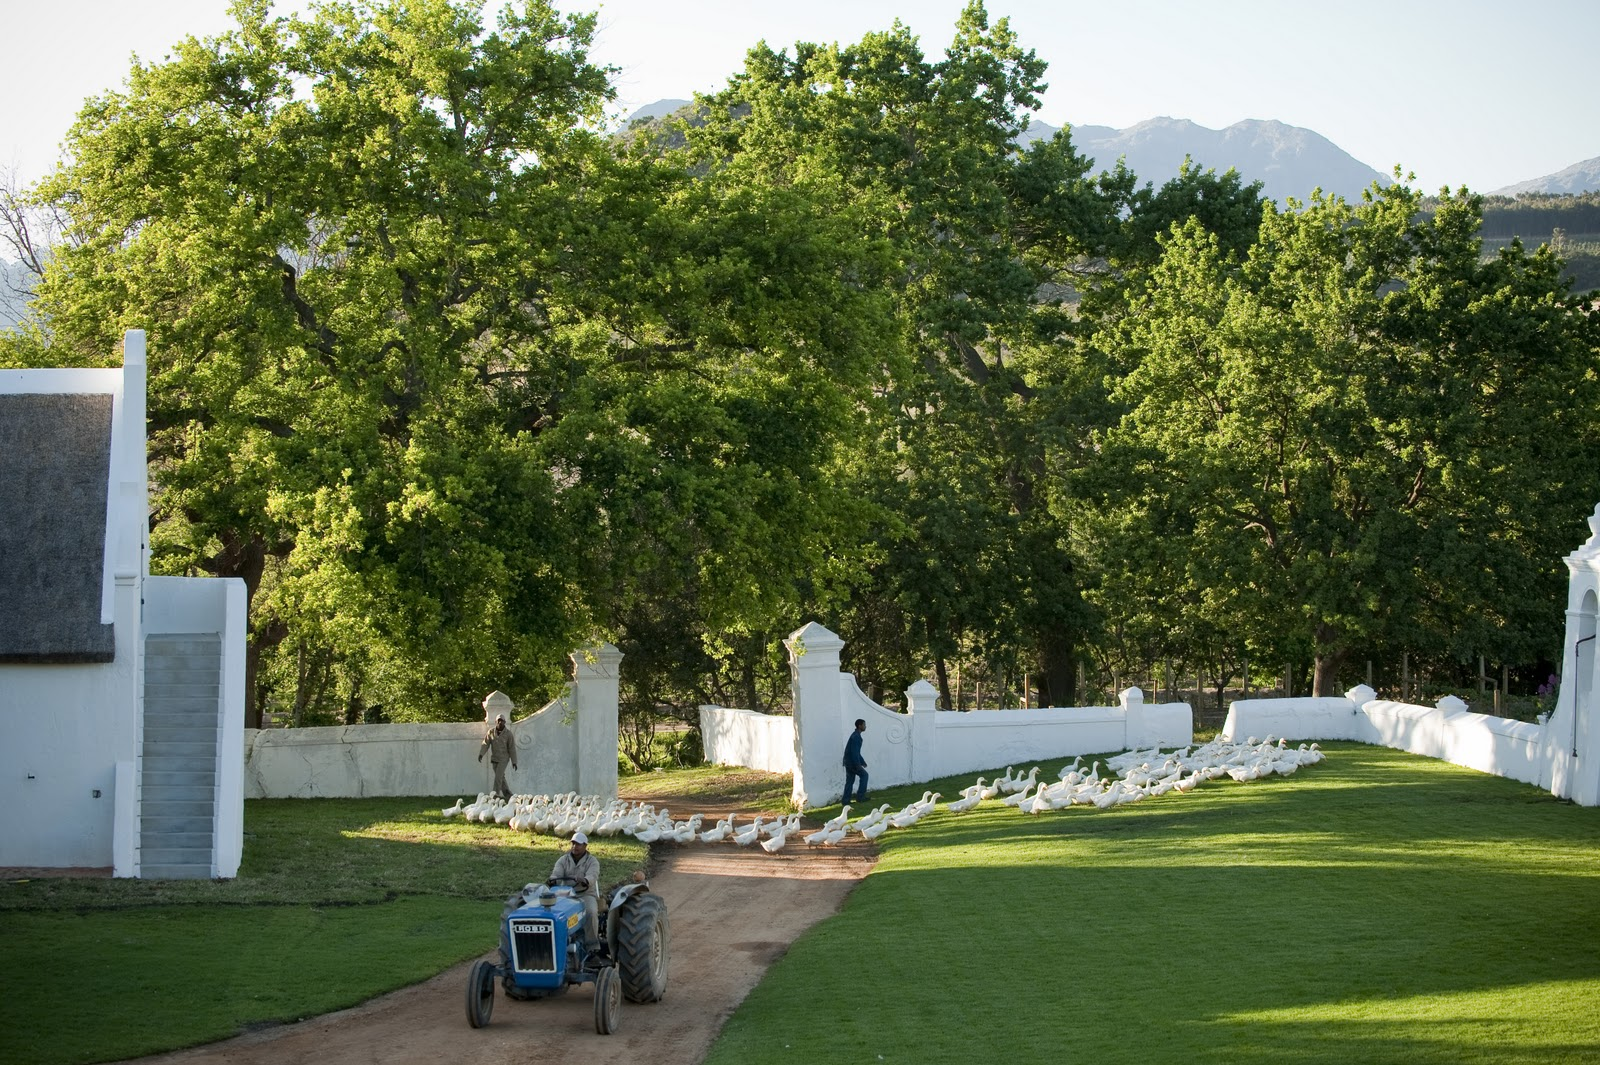 vafrica_photo_safari_South_Afrifca_Wine_Franschoek